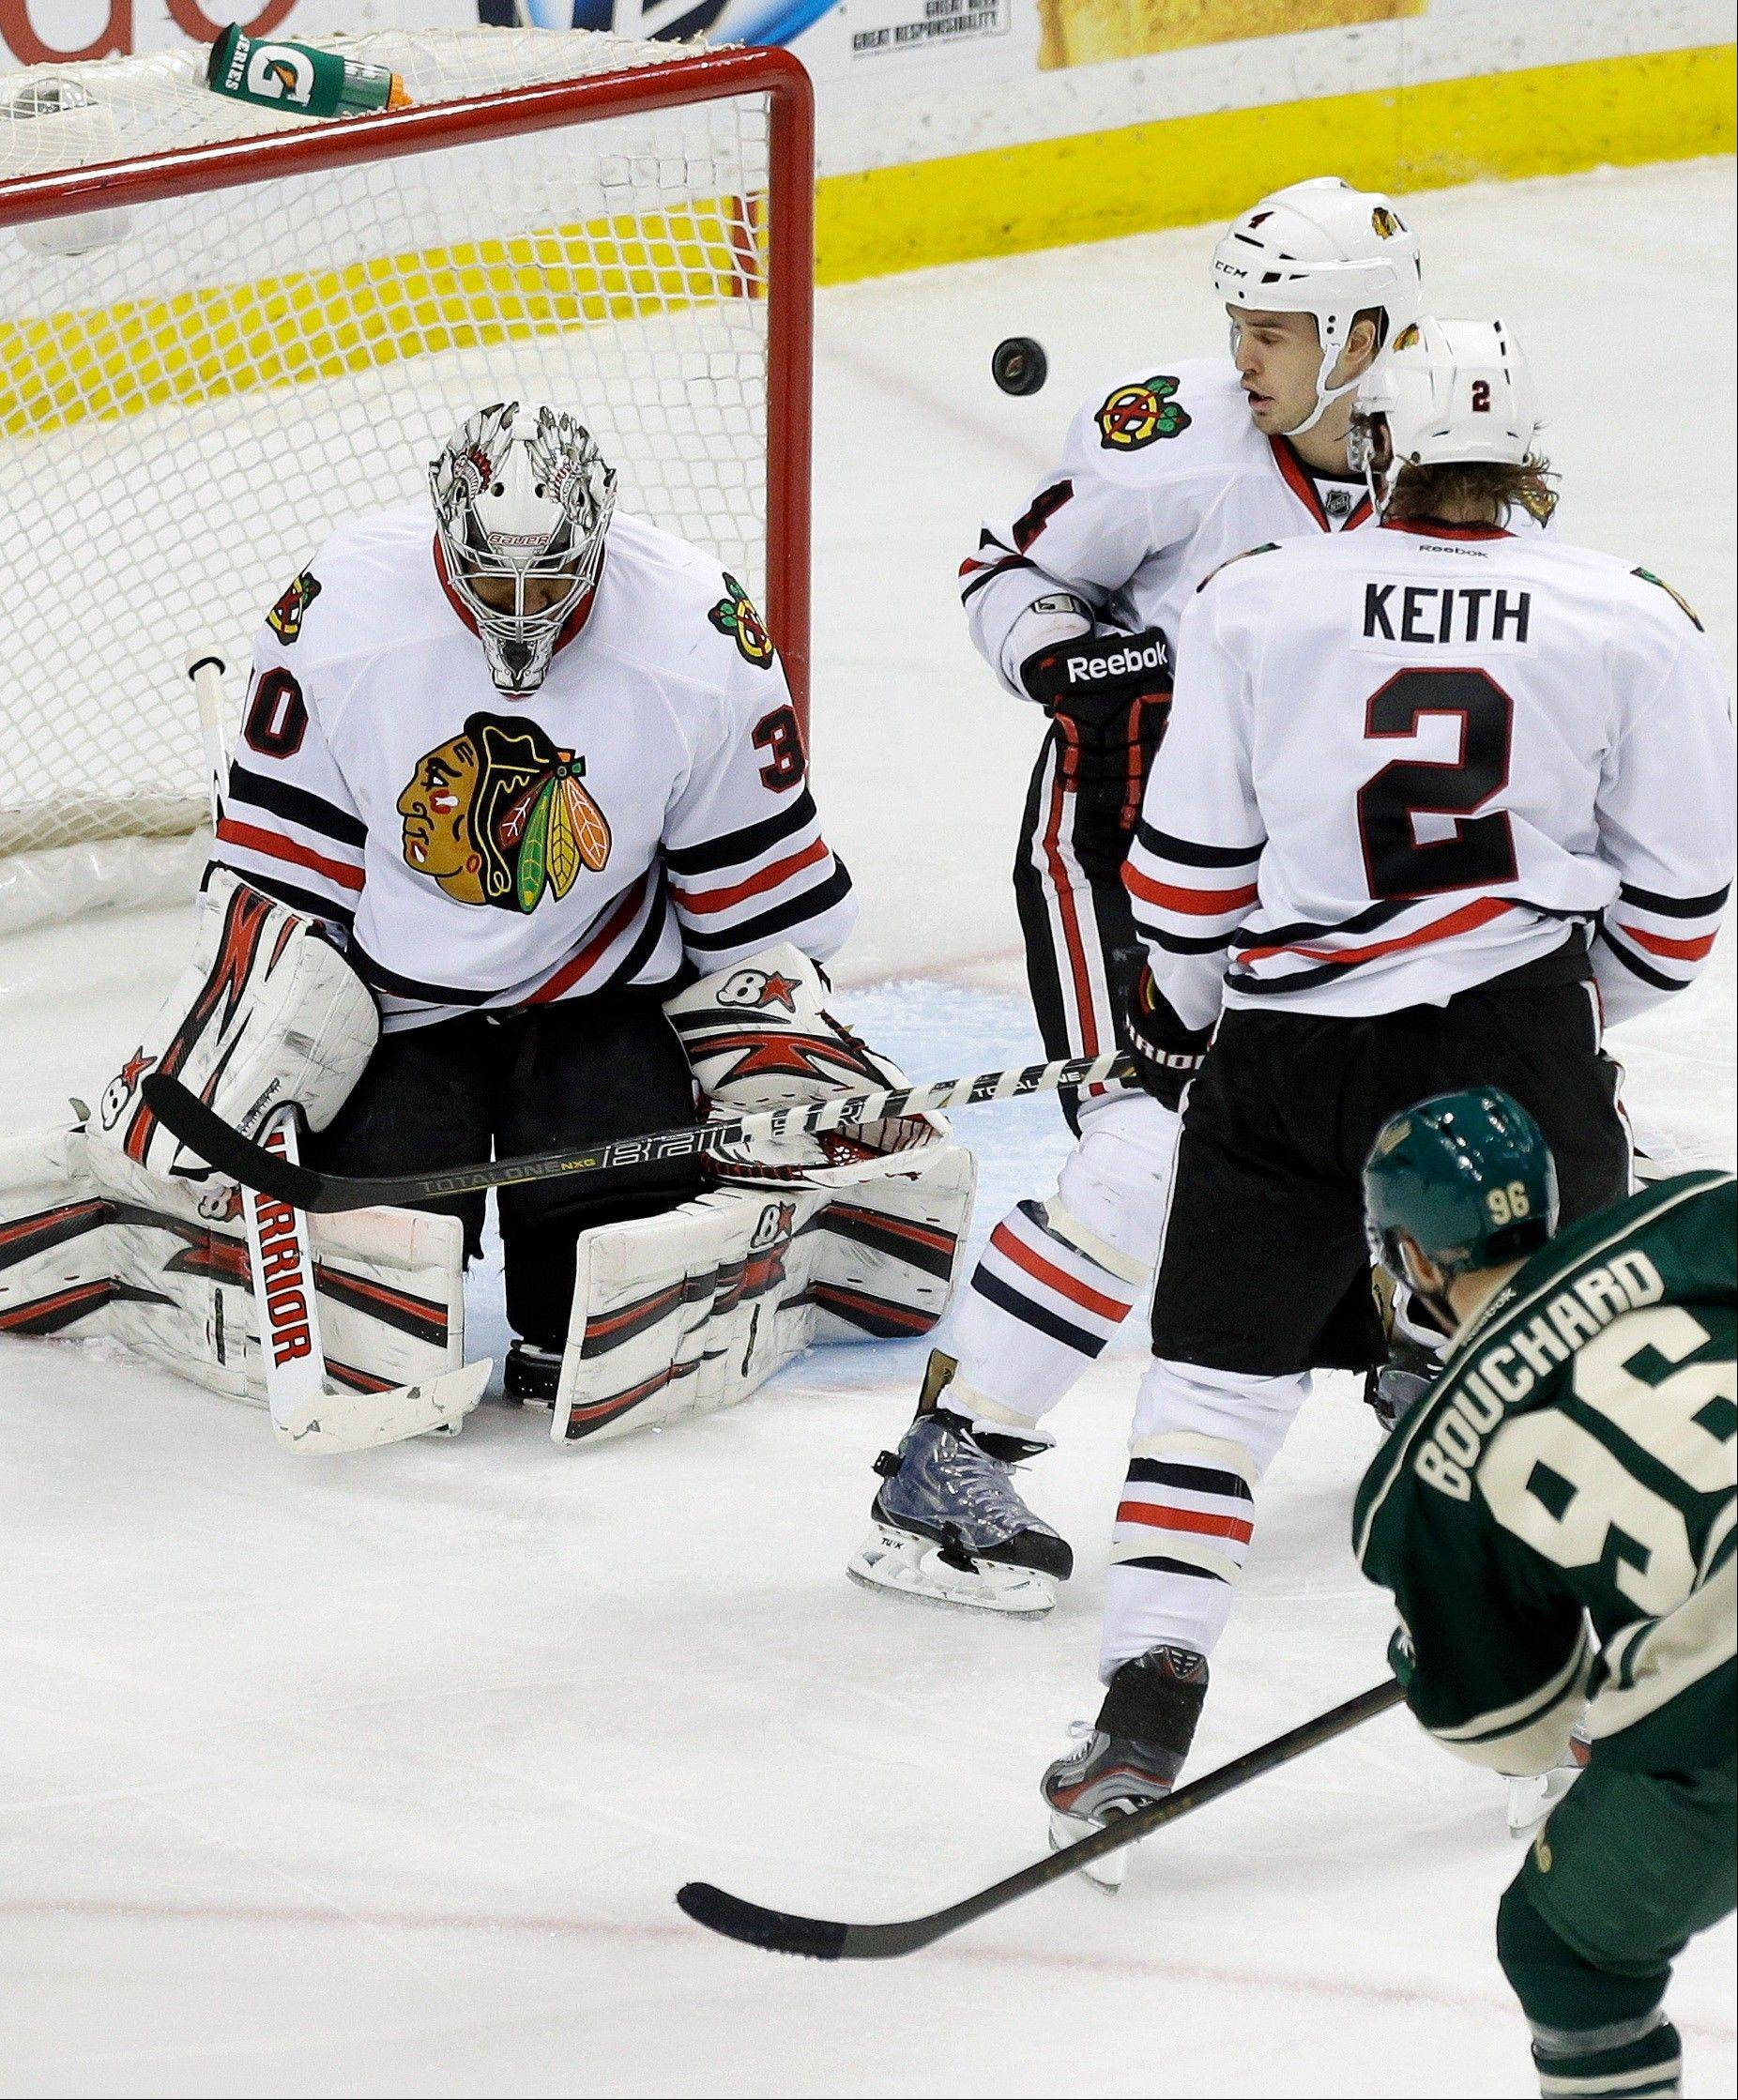 Chicago Blackhawks goalie Ray Emery, left, deflects a shot by Minnesota Wild's Pierre-Marc Bouchard, right, as Blackhawks' Duncan Keith (2) and Niklas Hjalmarsson of Sweden watch in the third period of an NHL hockey game Tuesday, April 9, 2013 in St. Paul. The Blackhawks won 1-0.